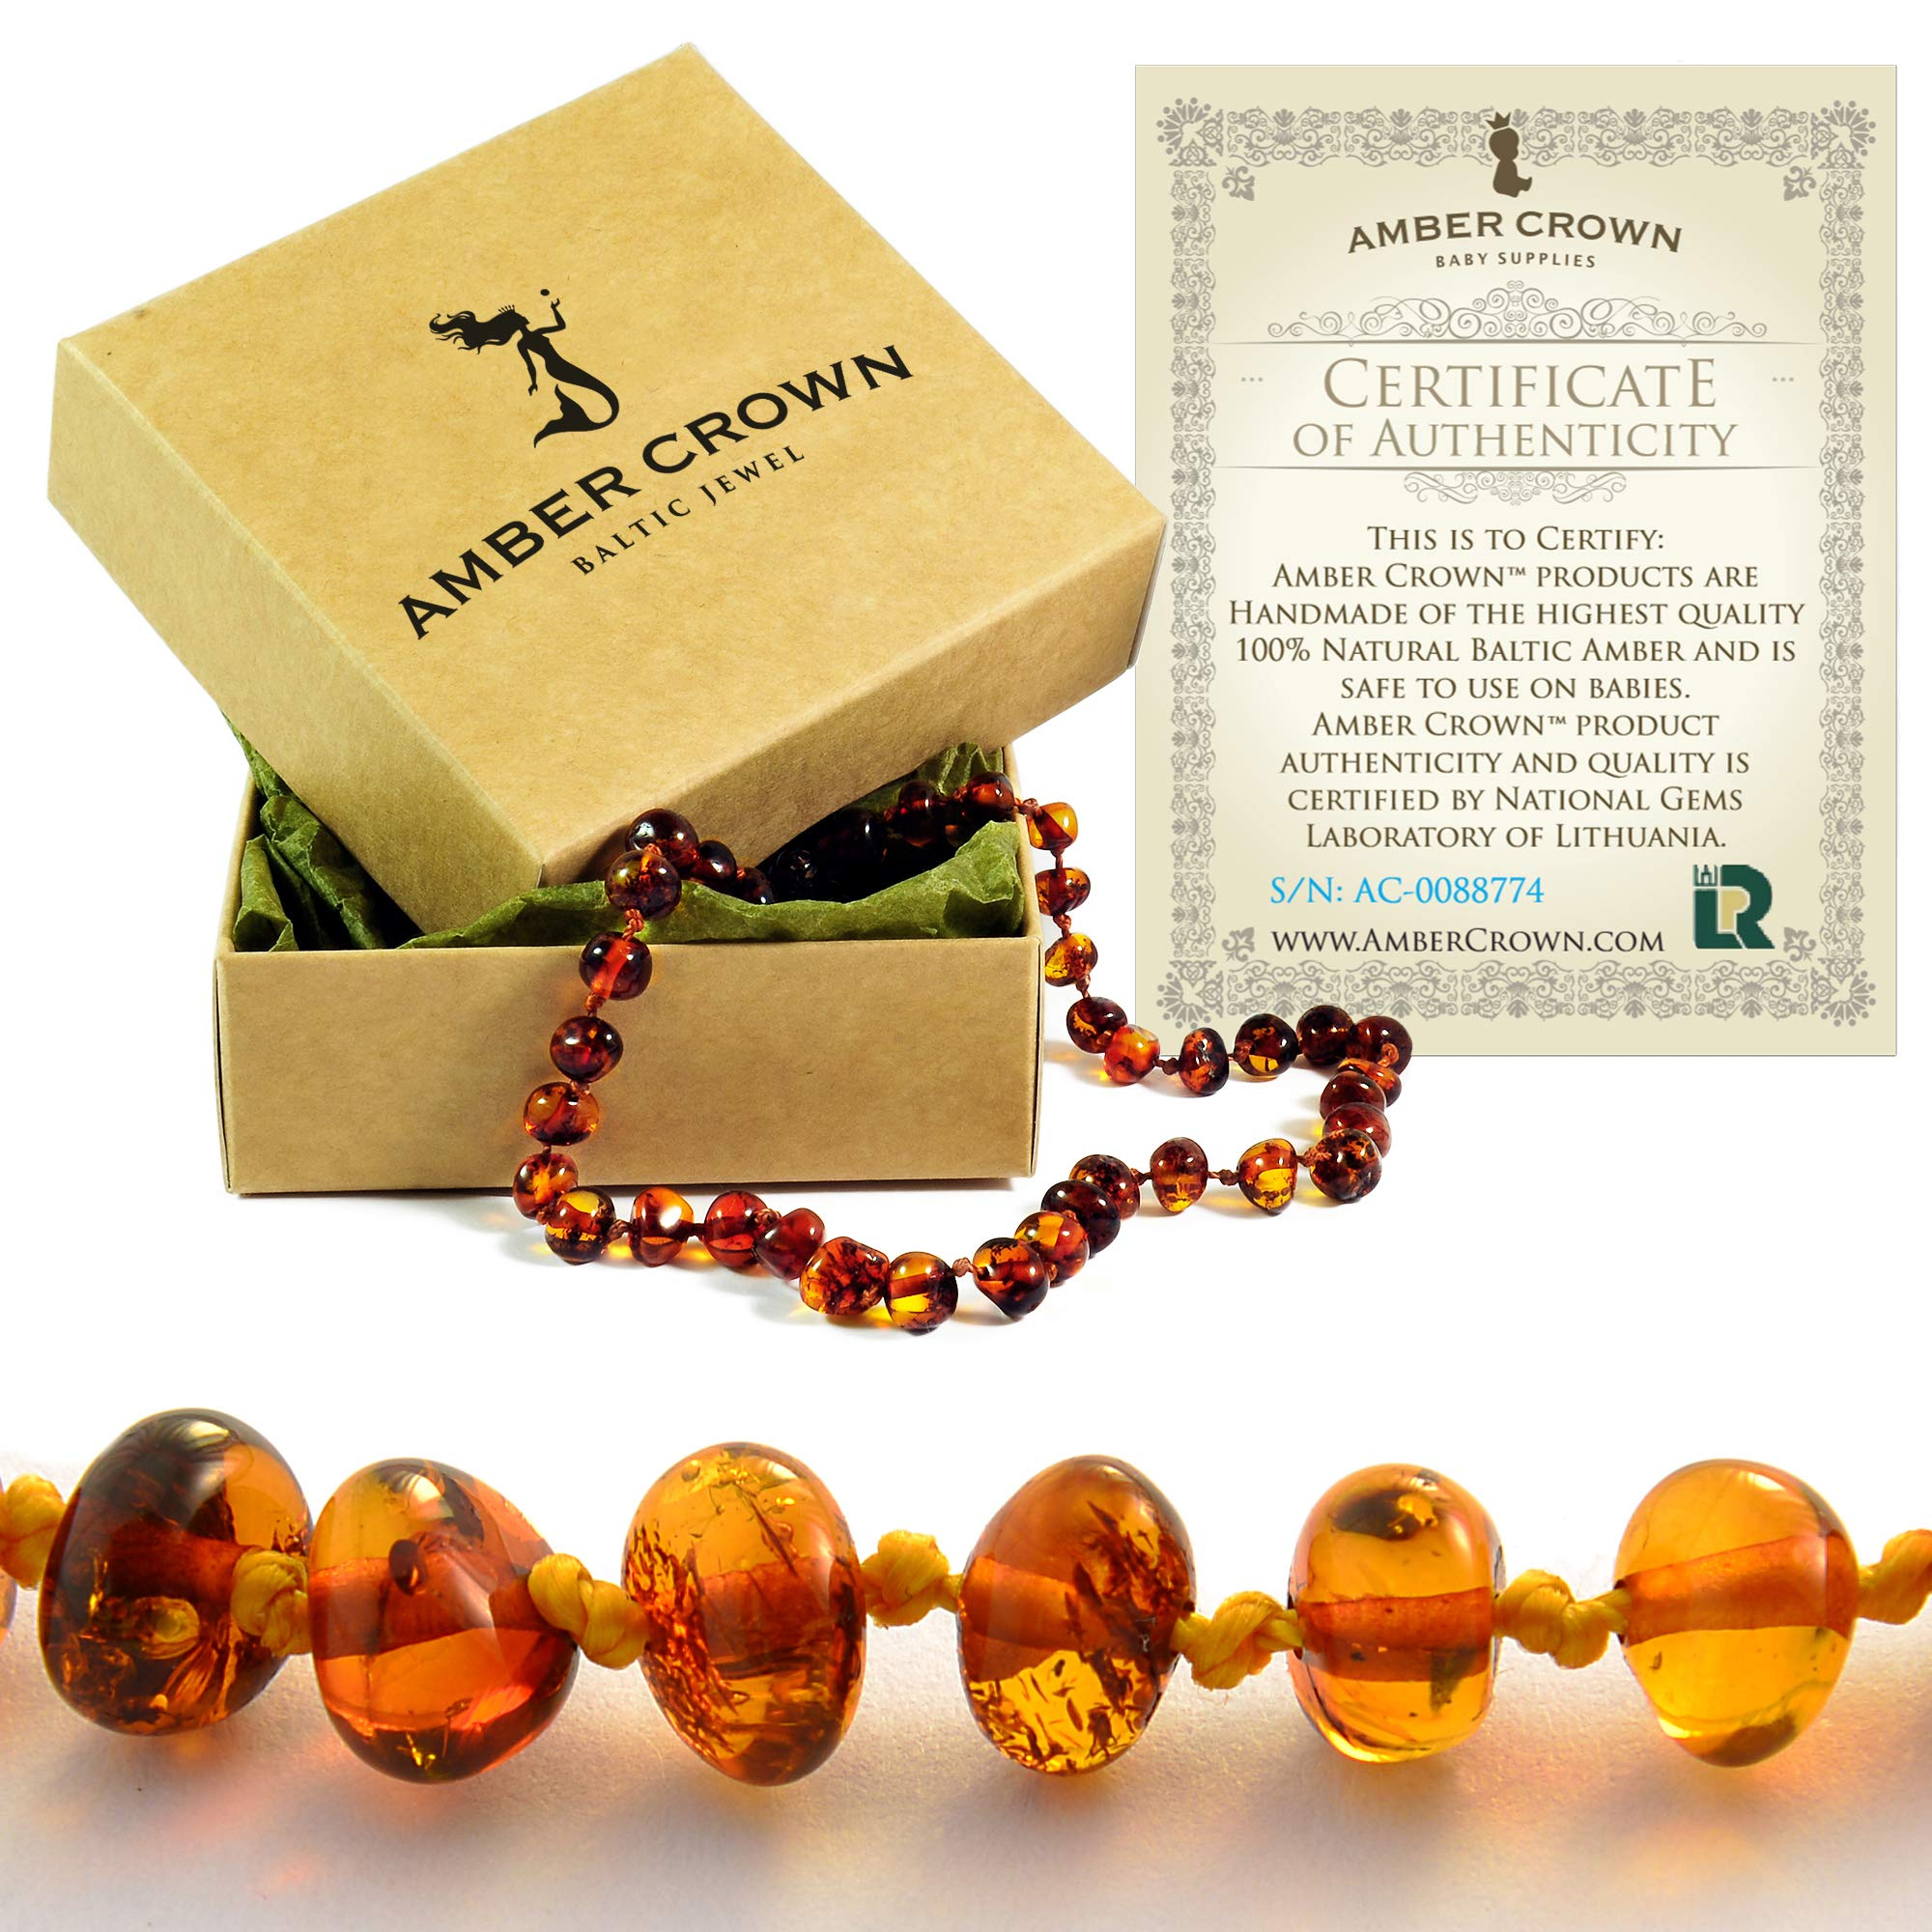 Amber Teething Necklace for Babies - Anti Inflammatory, Drooling and Teething Pain Reducing Natural Remedy - Made of Highest Quality Certified Baltic Amber - Perfect Baby Shower Gift - (Honey) by Amber Crown